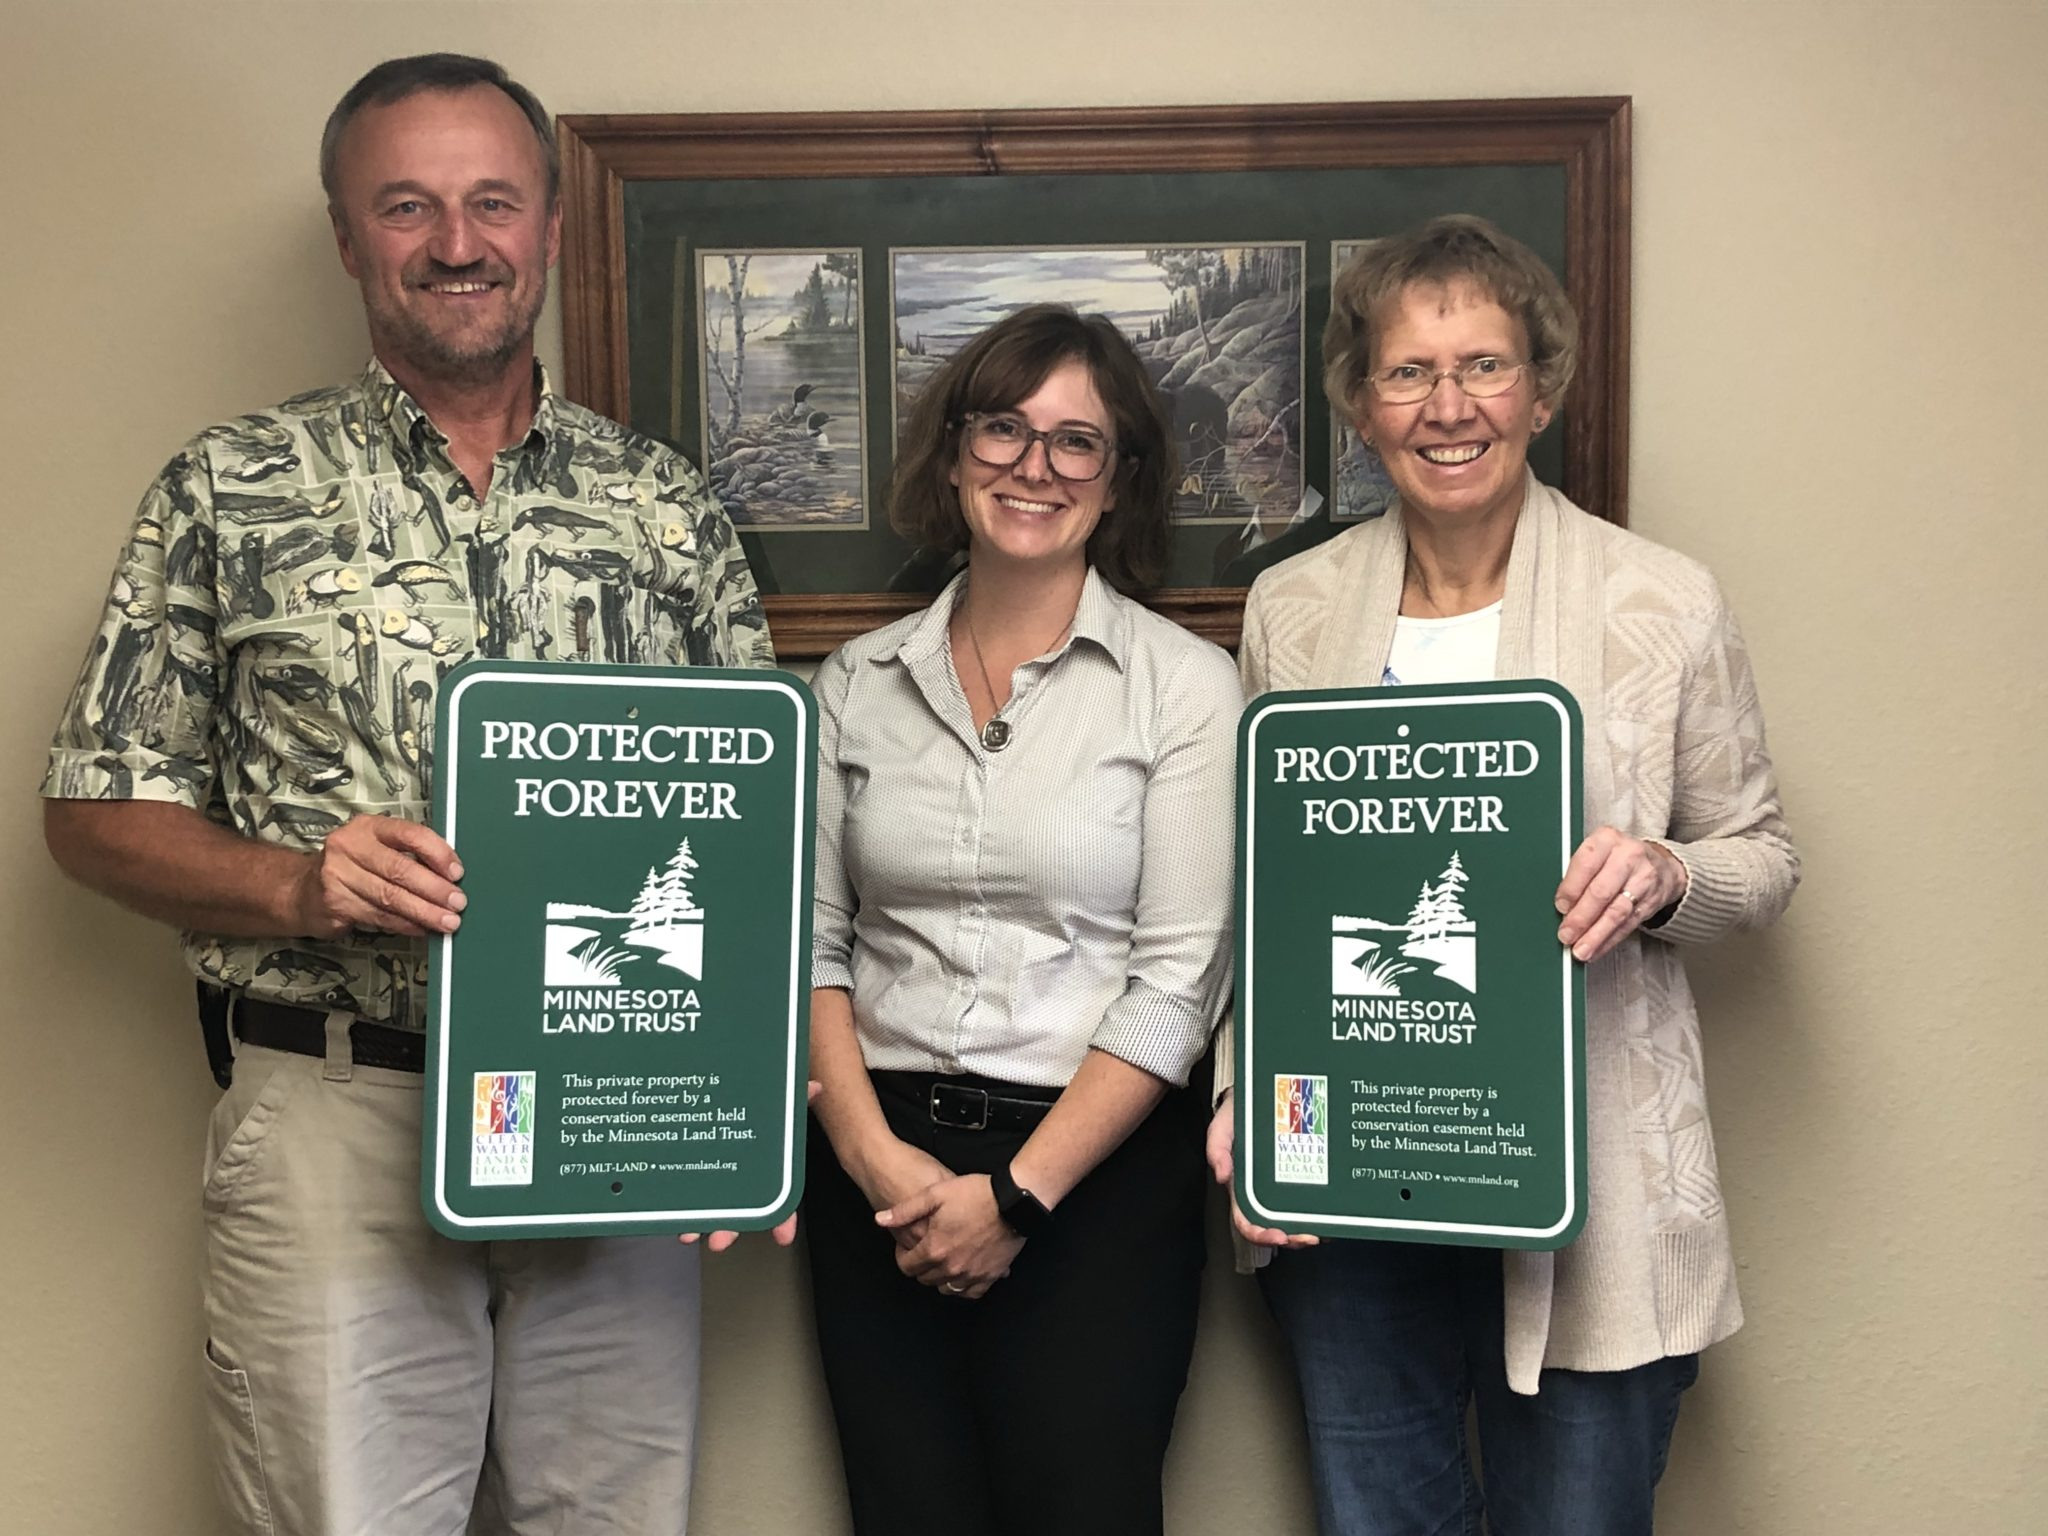 Gary Roerick, Vanessa Perry (Minnesota Land Trust), Sandy Roerick holding Protected Forever signs